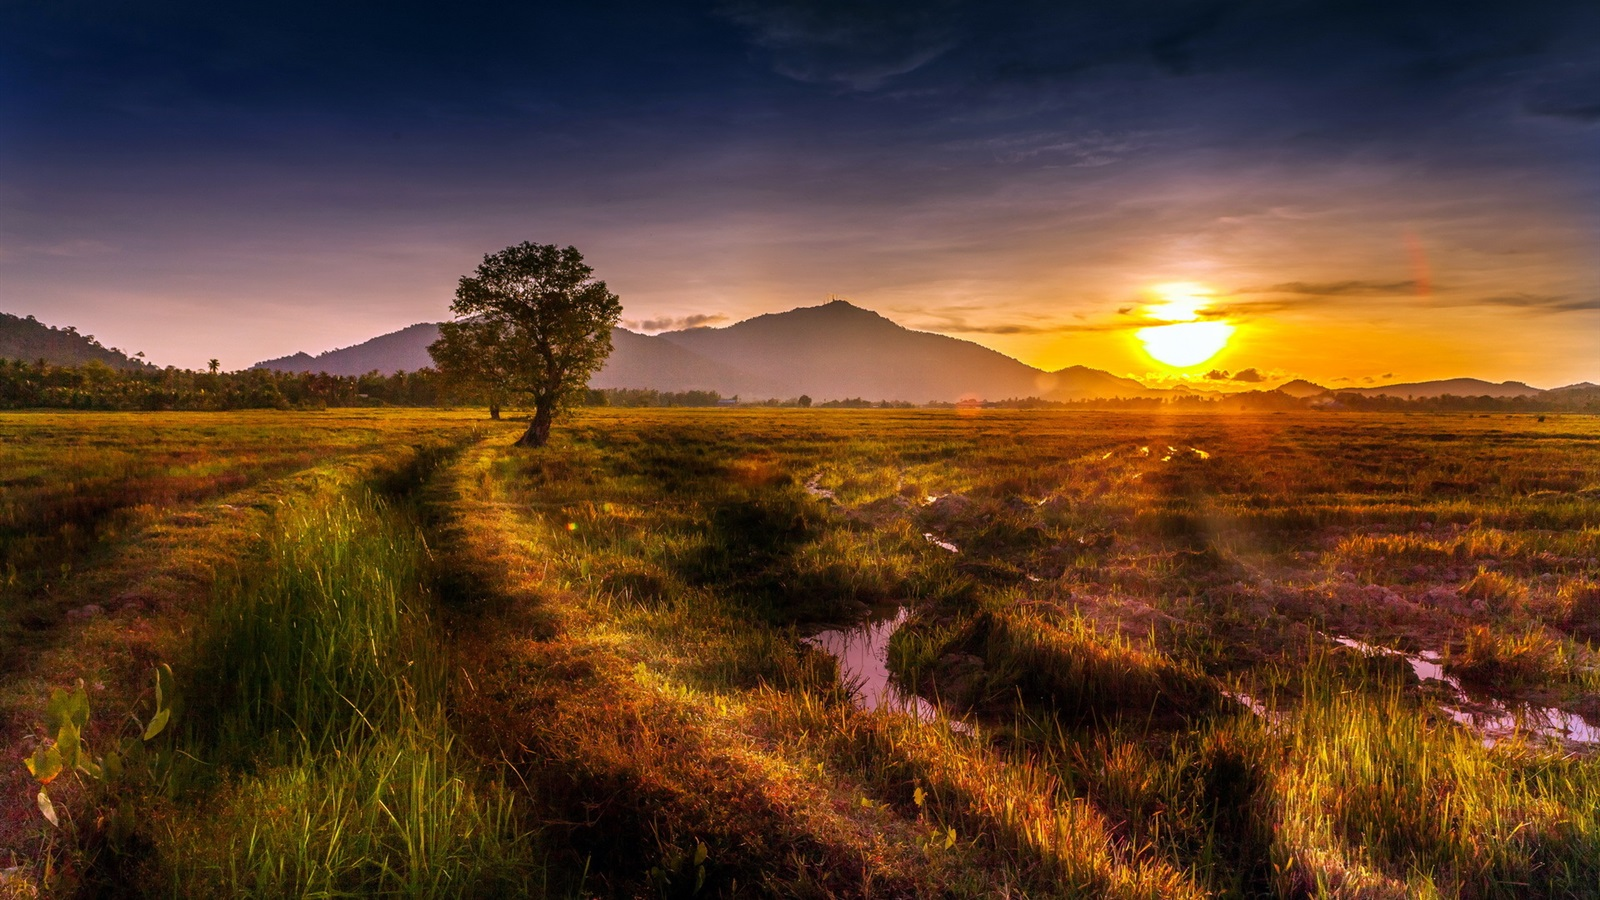 summer sunset landscape wallpaper - photo #11